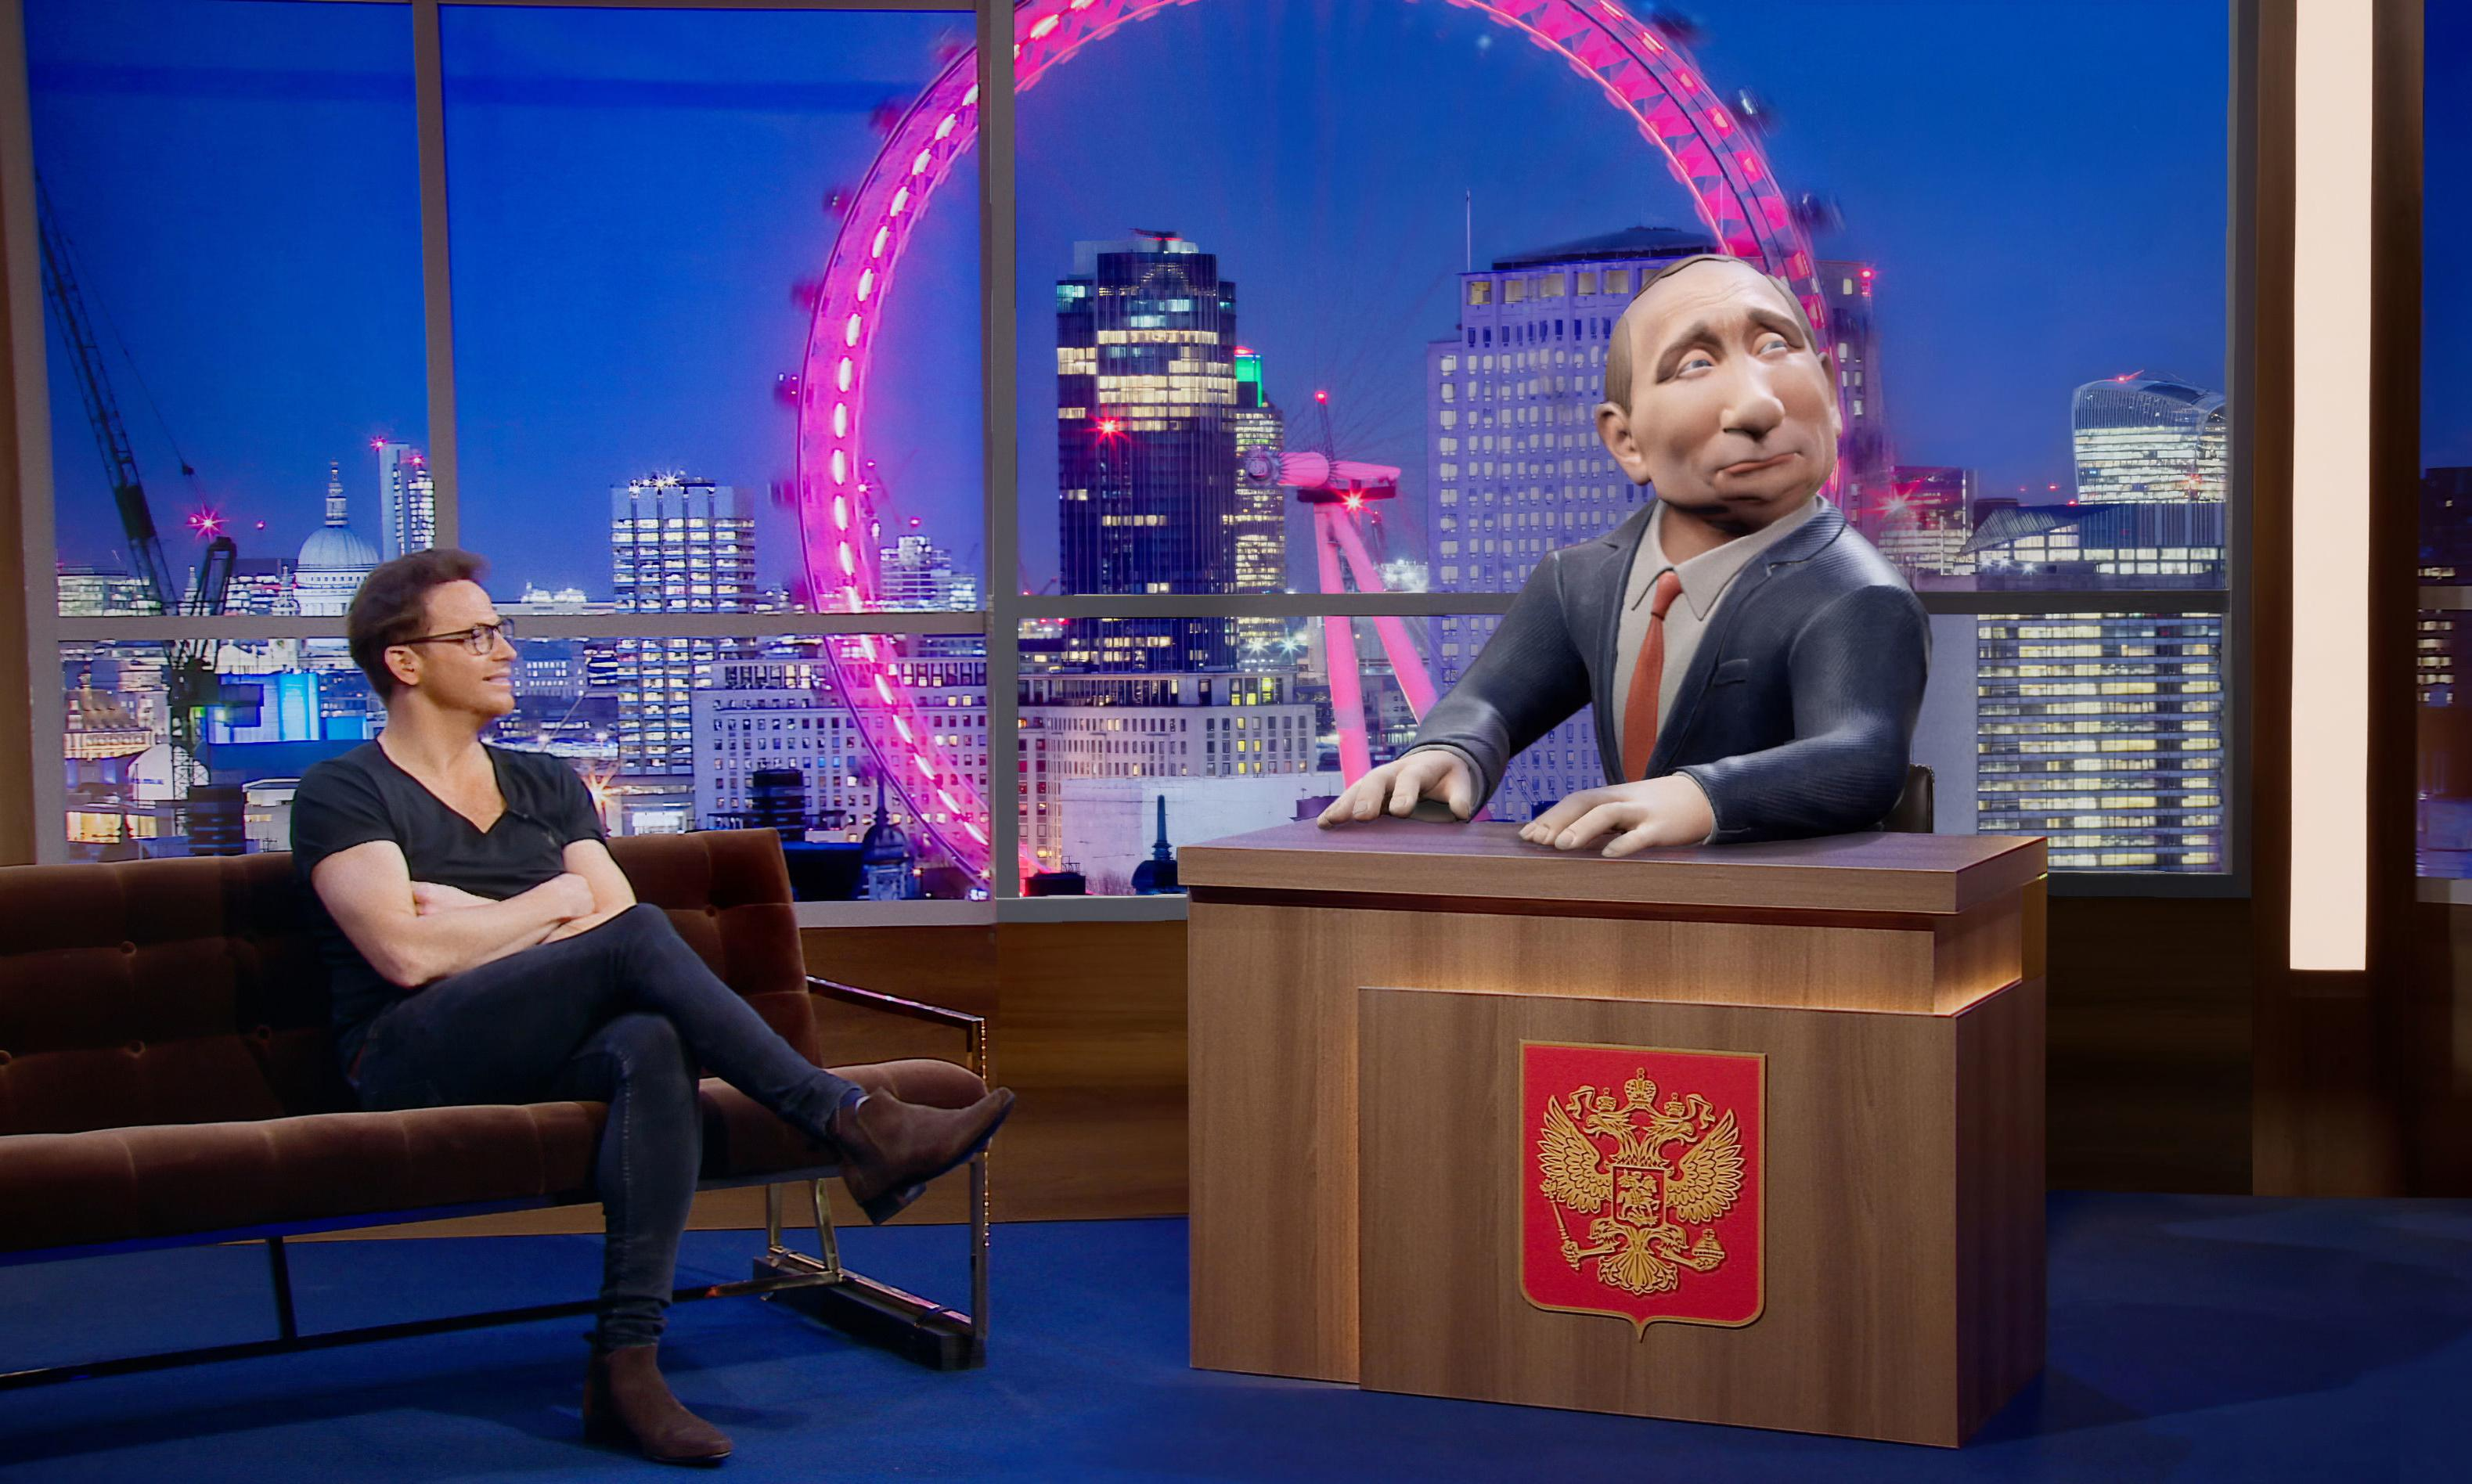 Russian broadcaster hits out at BBC show parodying Putin